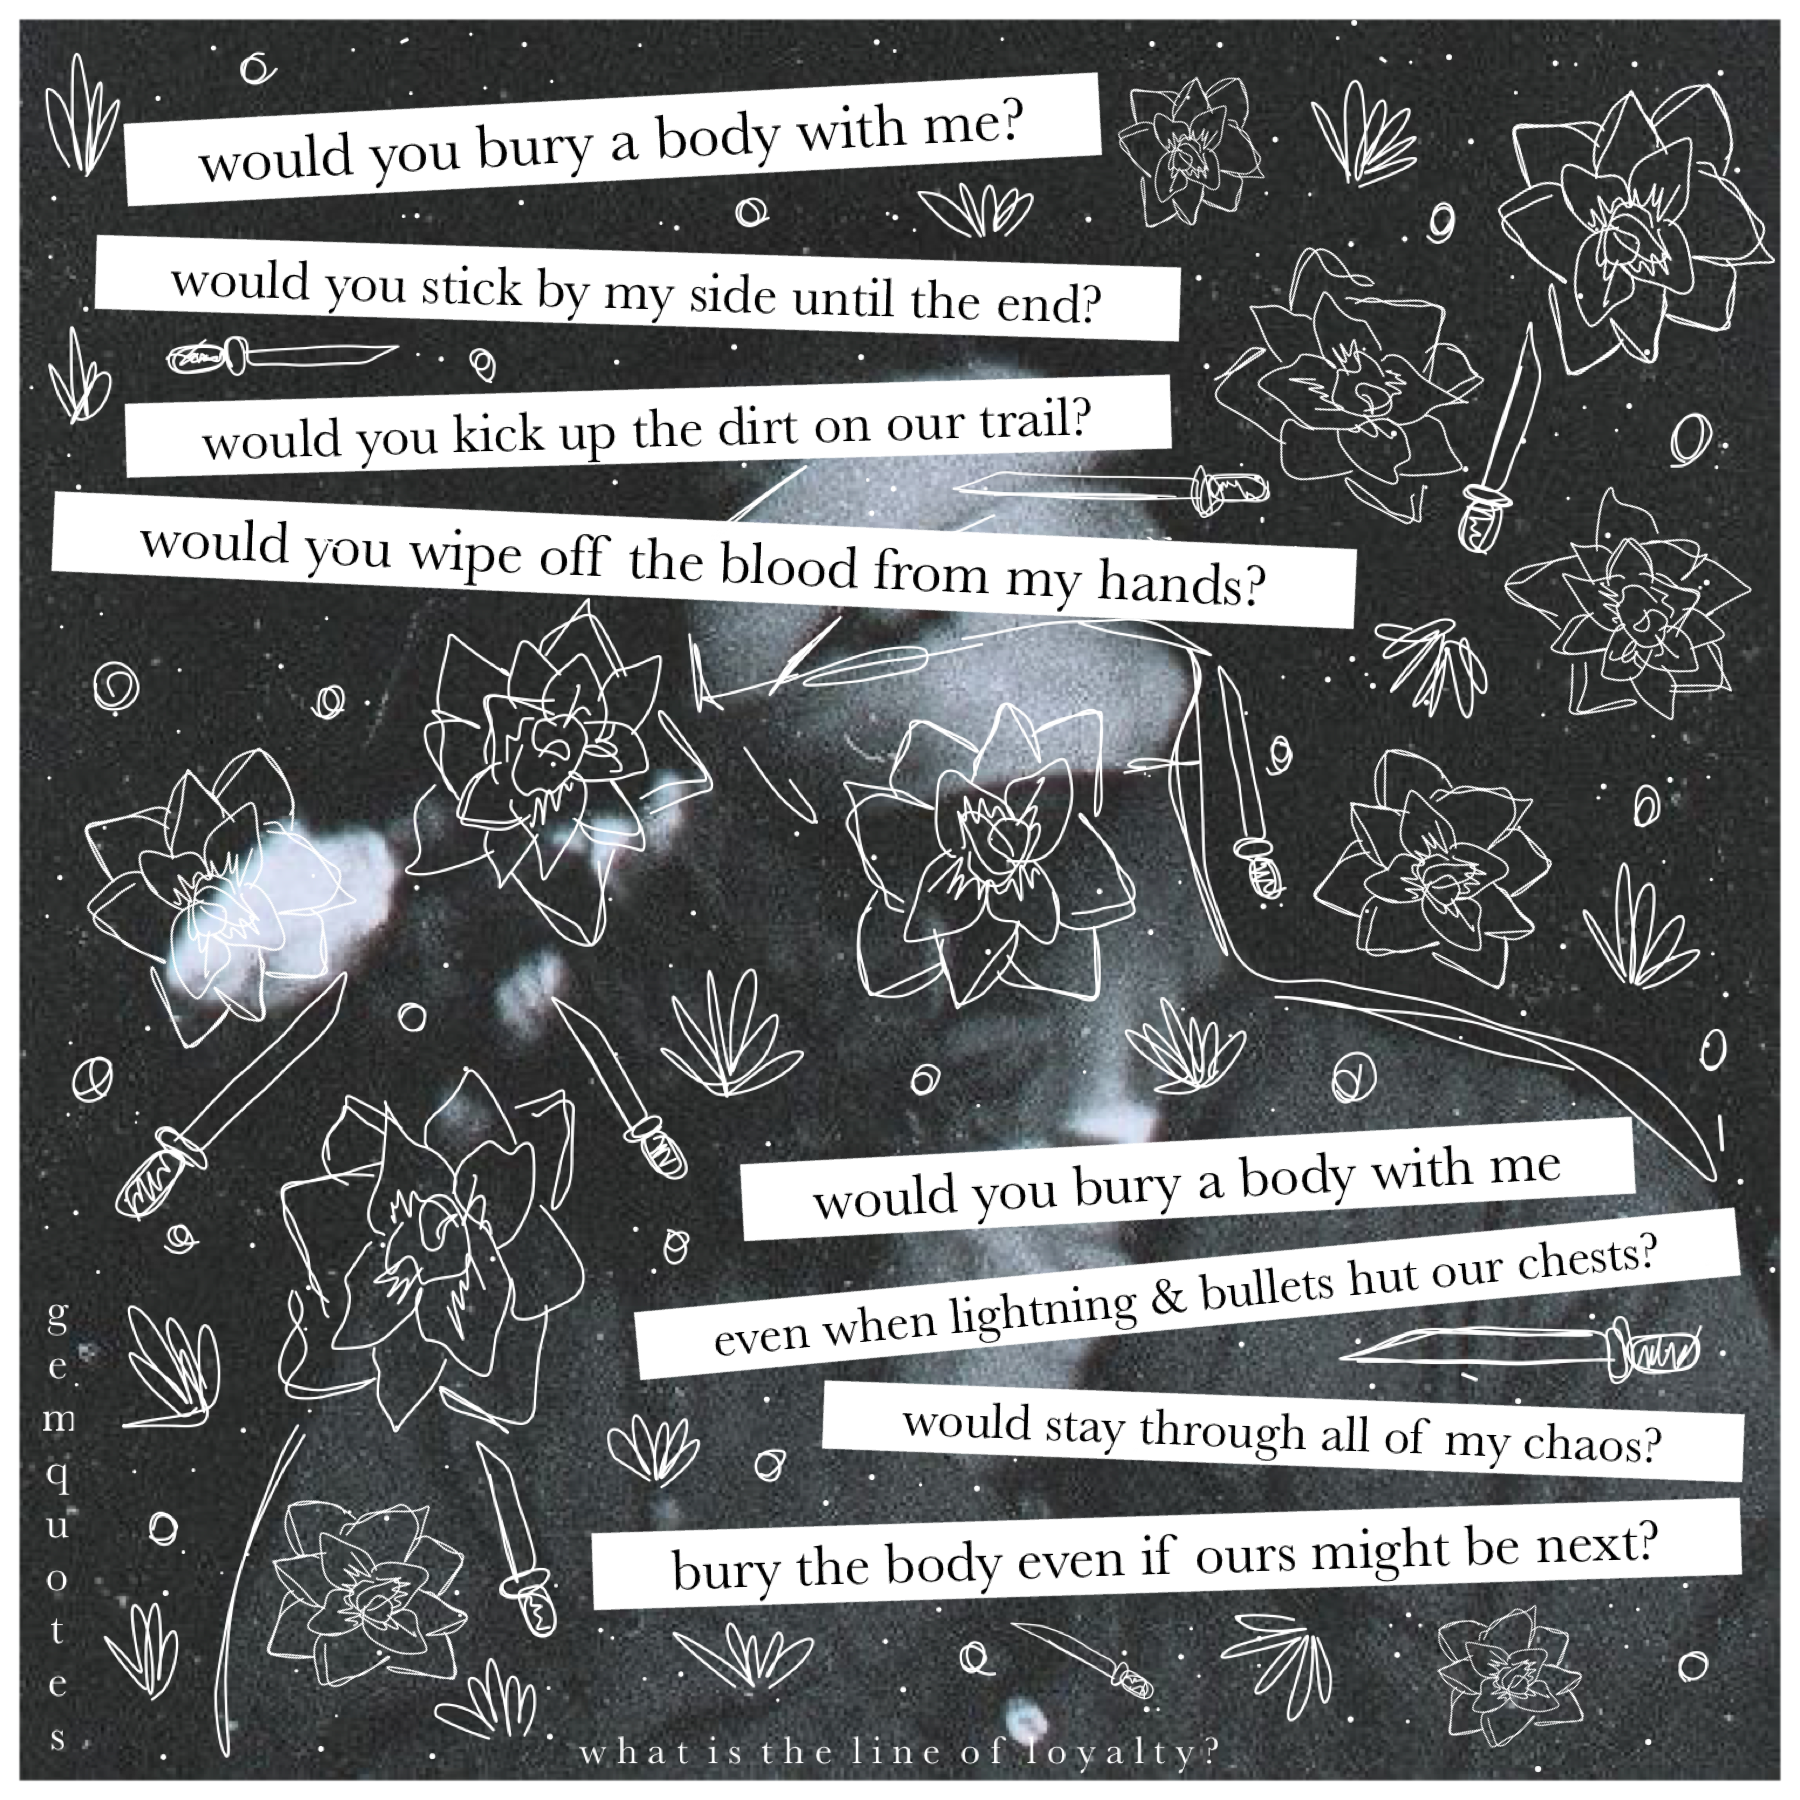 """""""XtapX"""" QOTD: Would u help ur best friend in the whole world bury the body of someone they killed, and the person they killed is someone you actually kinda liked? Wrote this poem because the question sprang into mind🤔 Sending thoughtful vibes~💗🤔🤔🤔"""